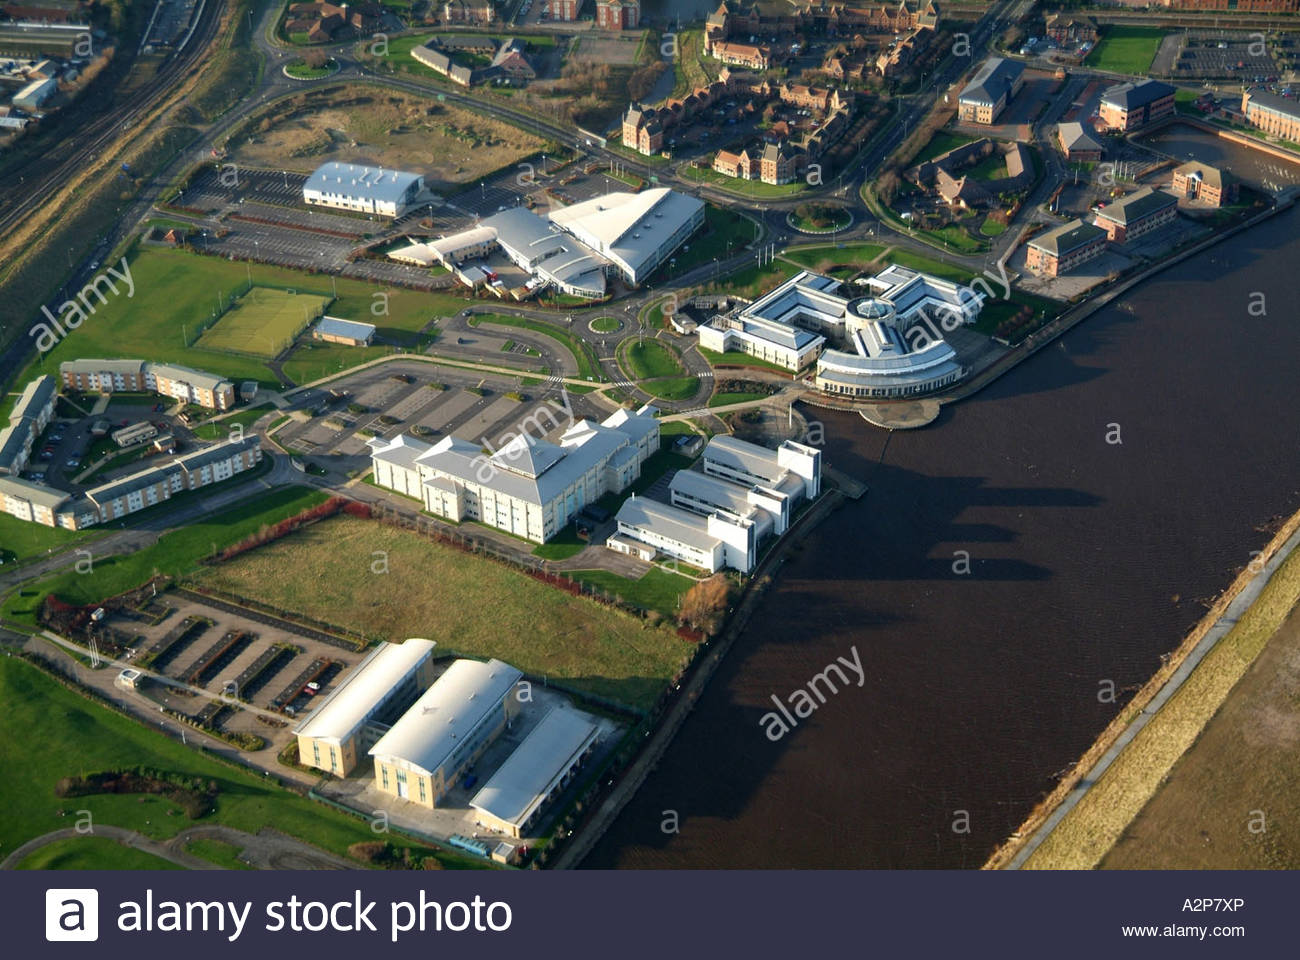 Queens Campus of Durham University, Stockton Upon Tees, North East England, January 2007 - Stock Image